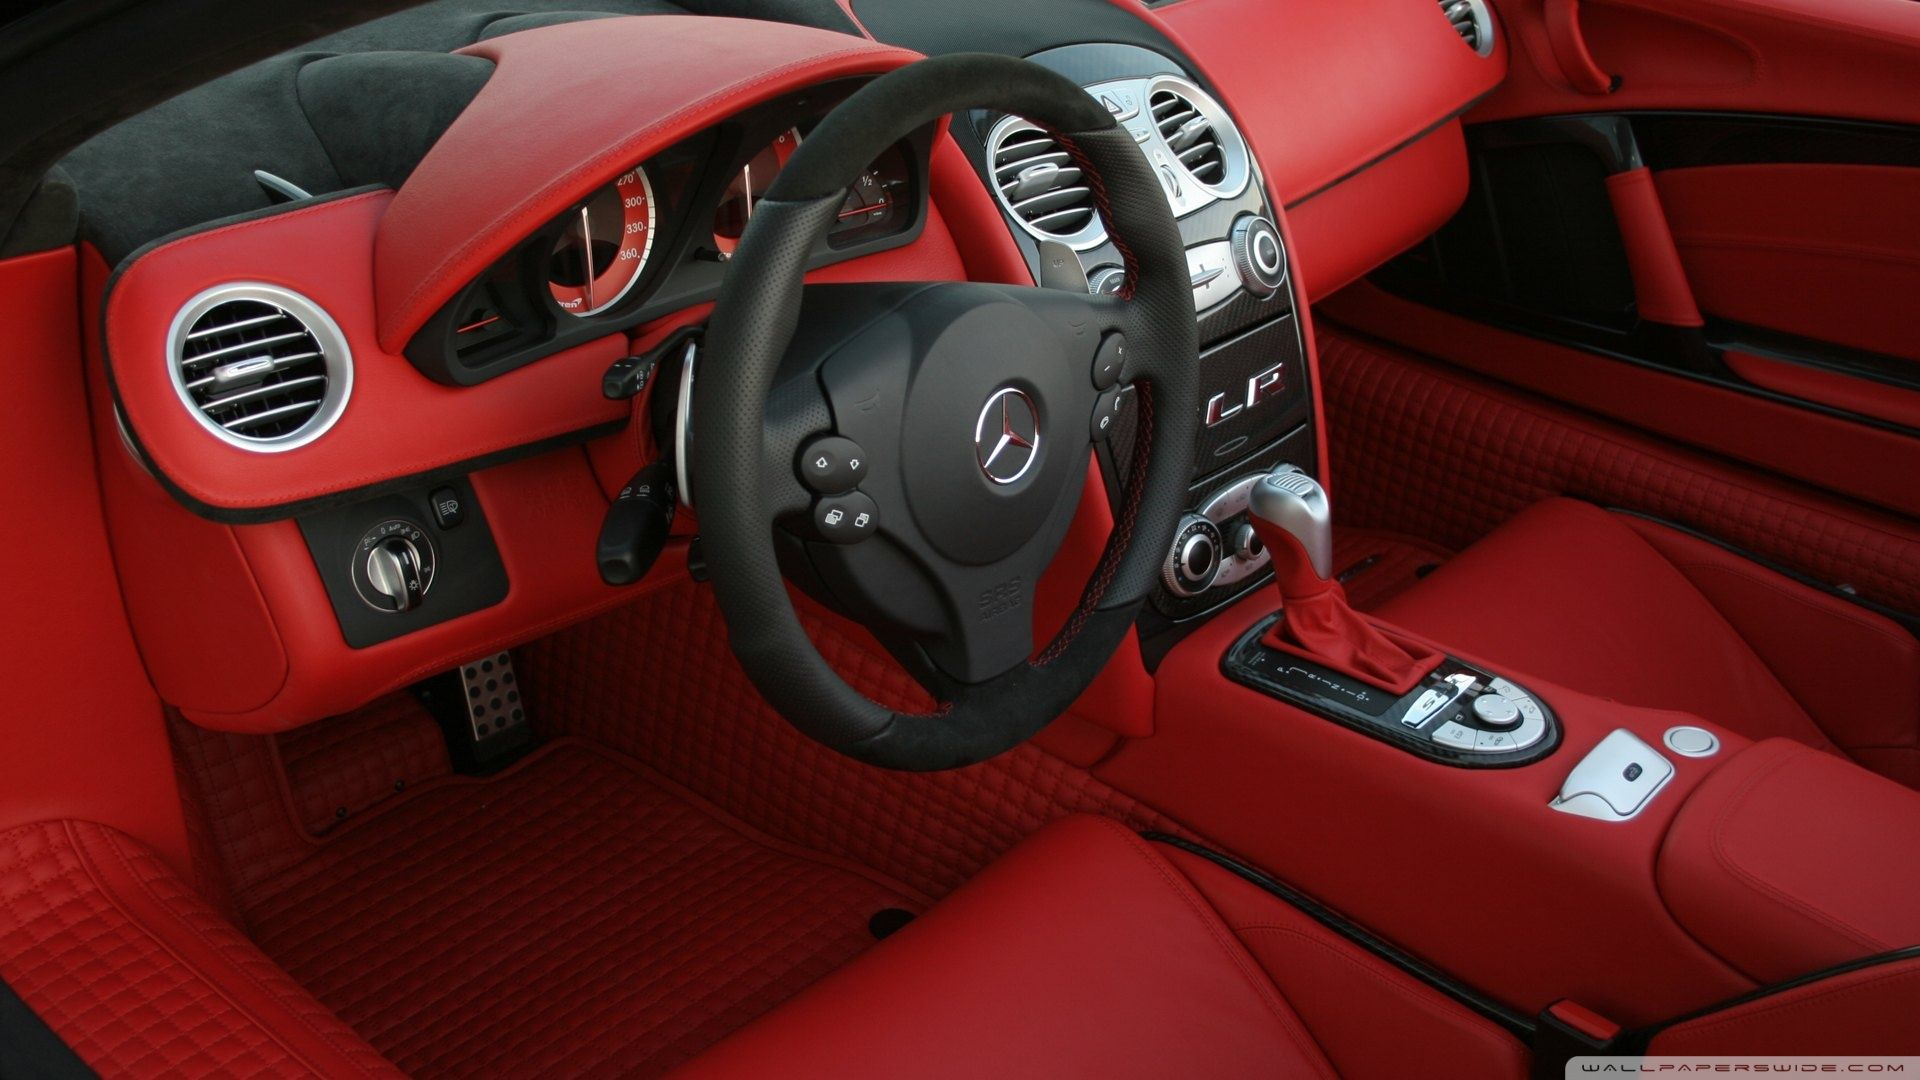 Car Interior 75 HD desktop wallpaper : Widescreen : High ...